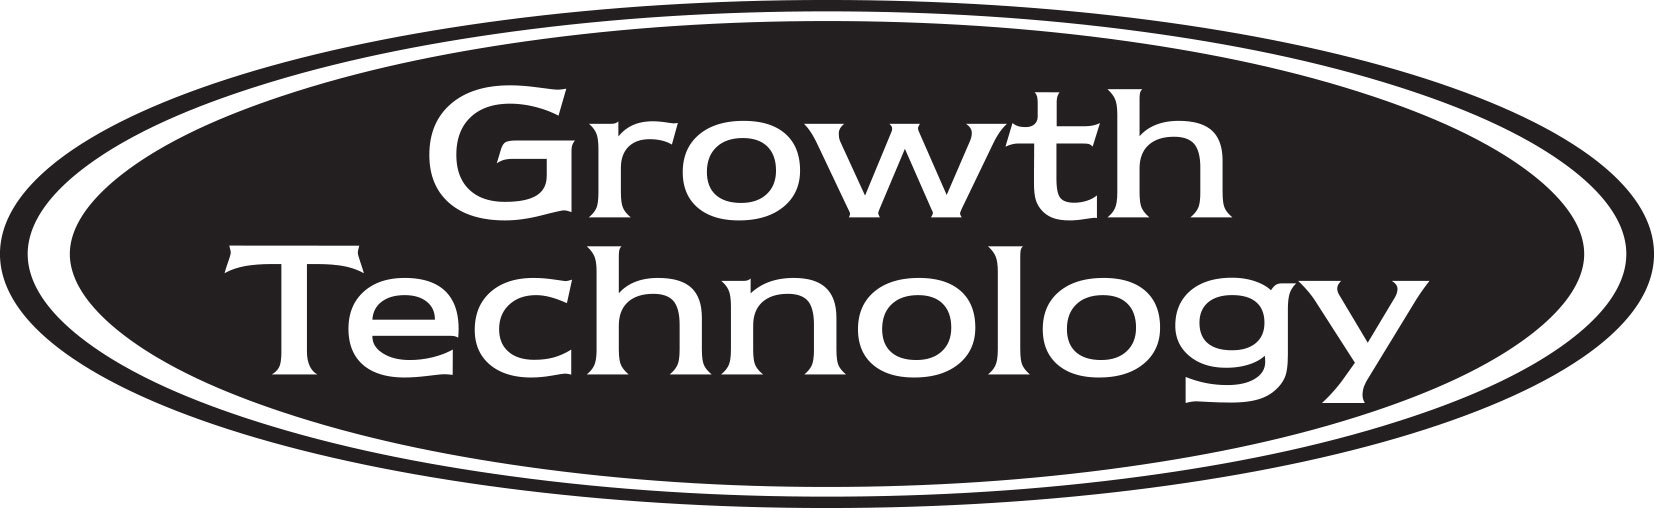 growth-technology.ru